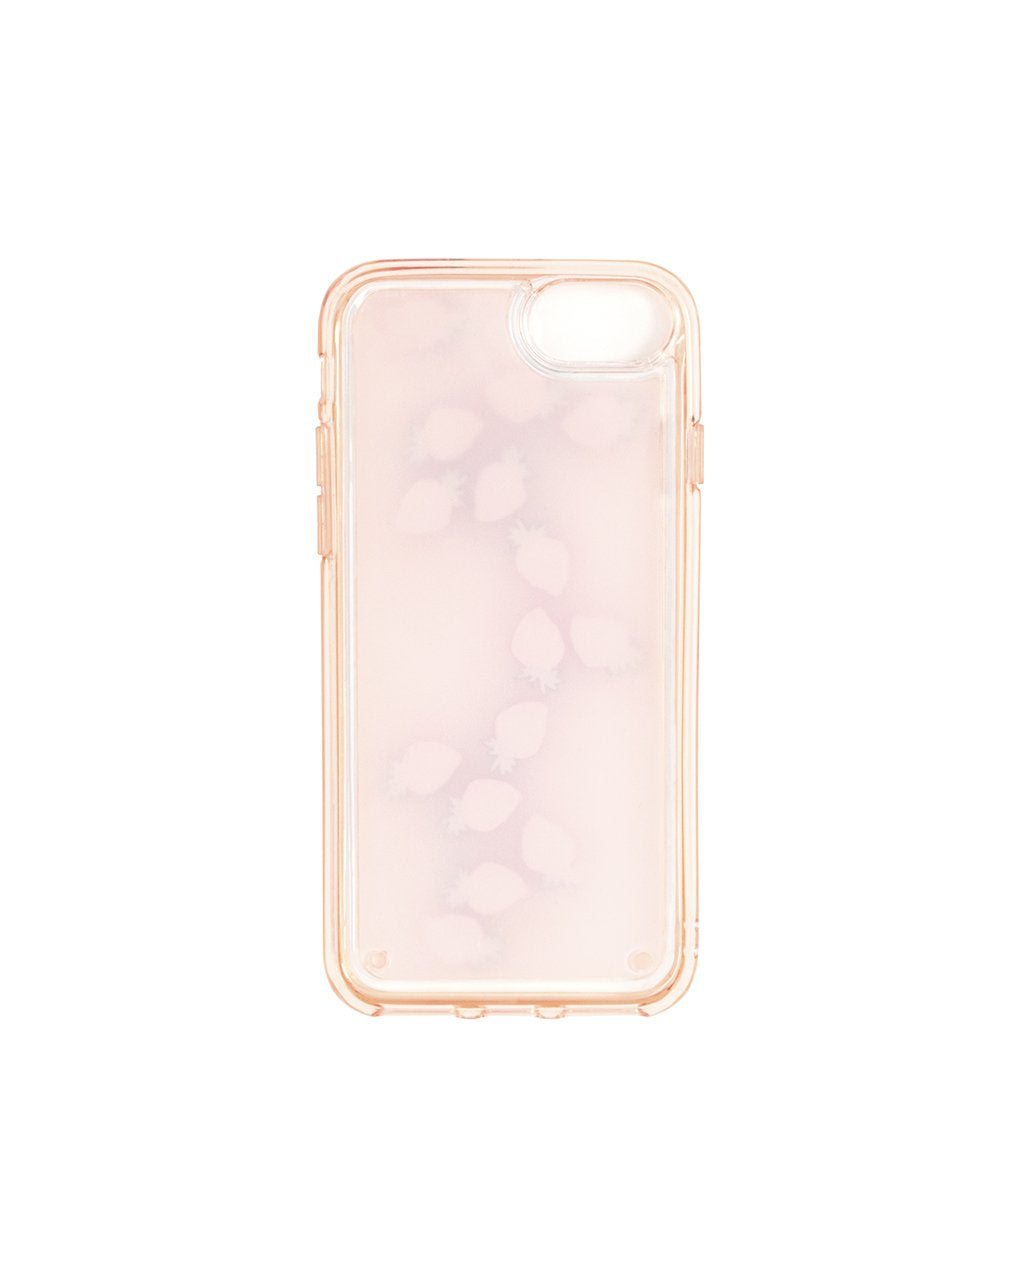 Durable double-walled design keeps your phone safe and the little strawberries afloat.